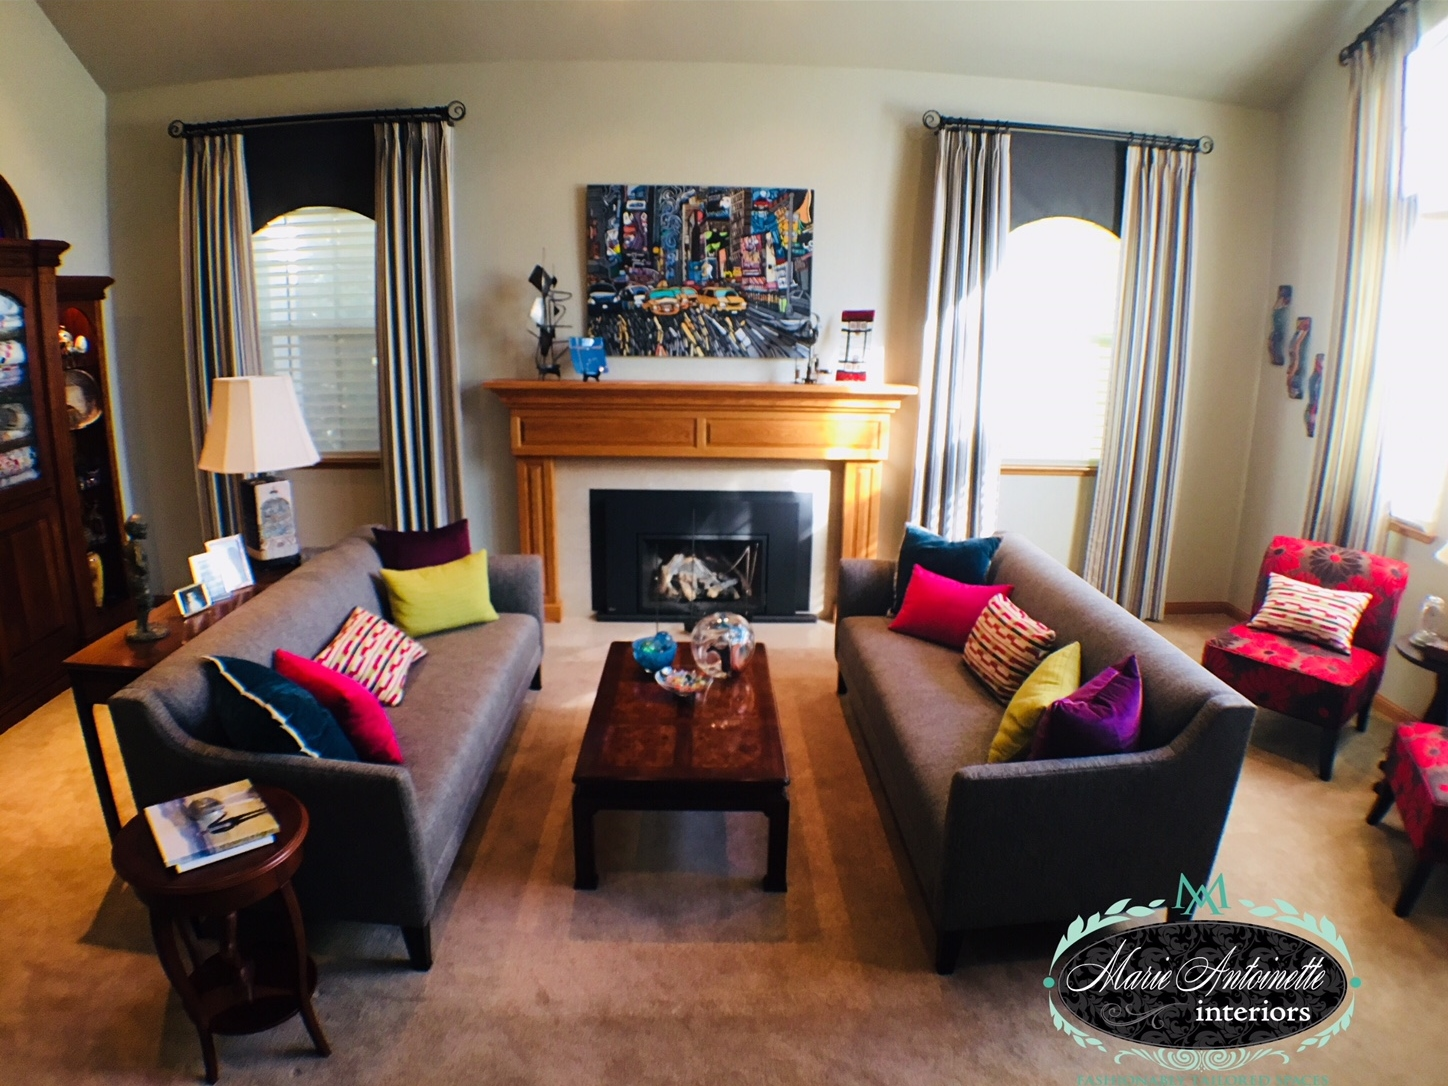 This is one of my favorite projects! An otherwise gray monochromatic room comes alive with bright colored pillows that add life and a sense of drama to my client's living room. Loved by all whom entered, a fun and casual way to enjoy the room!